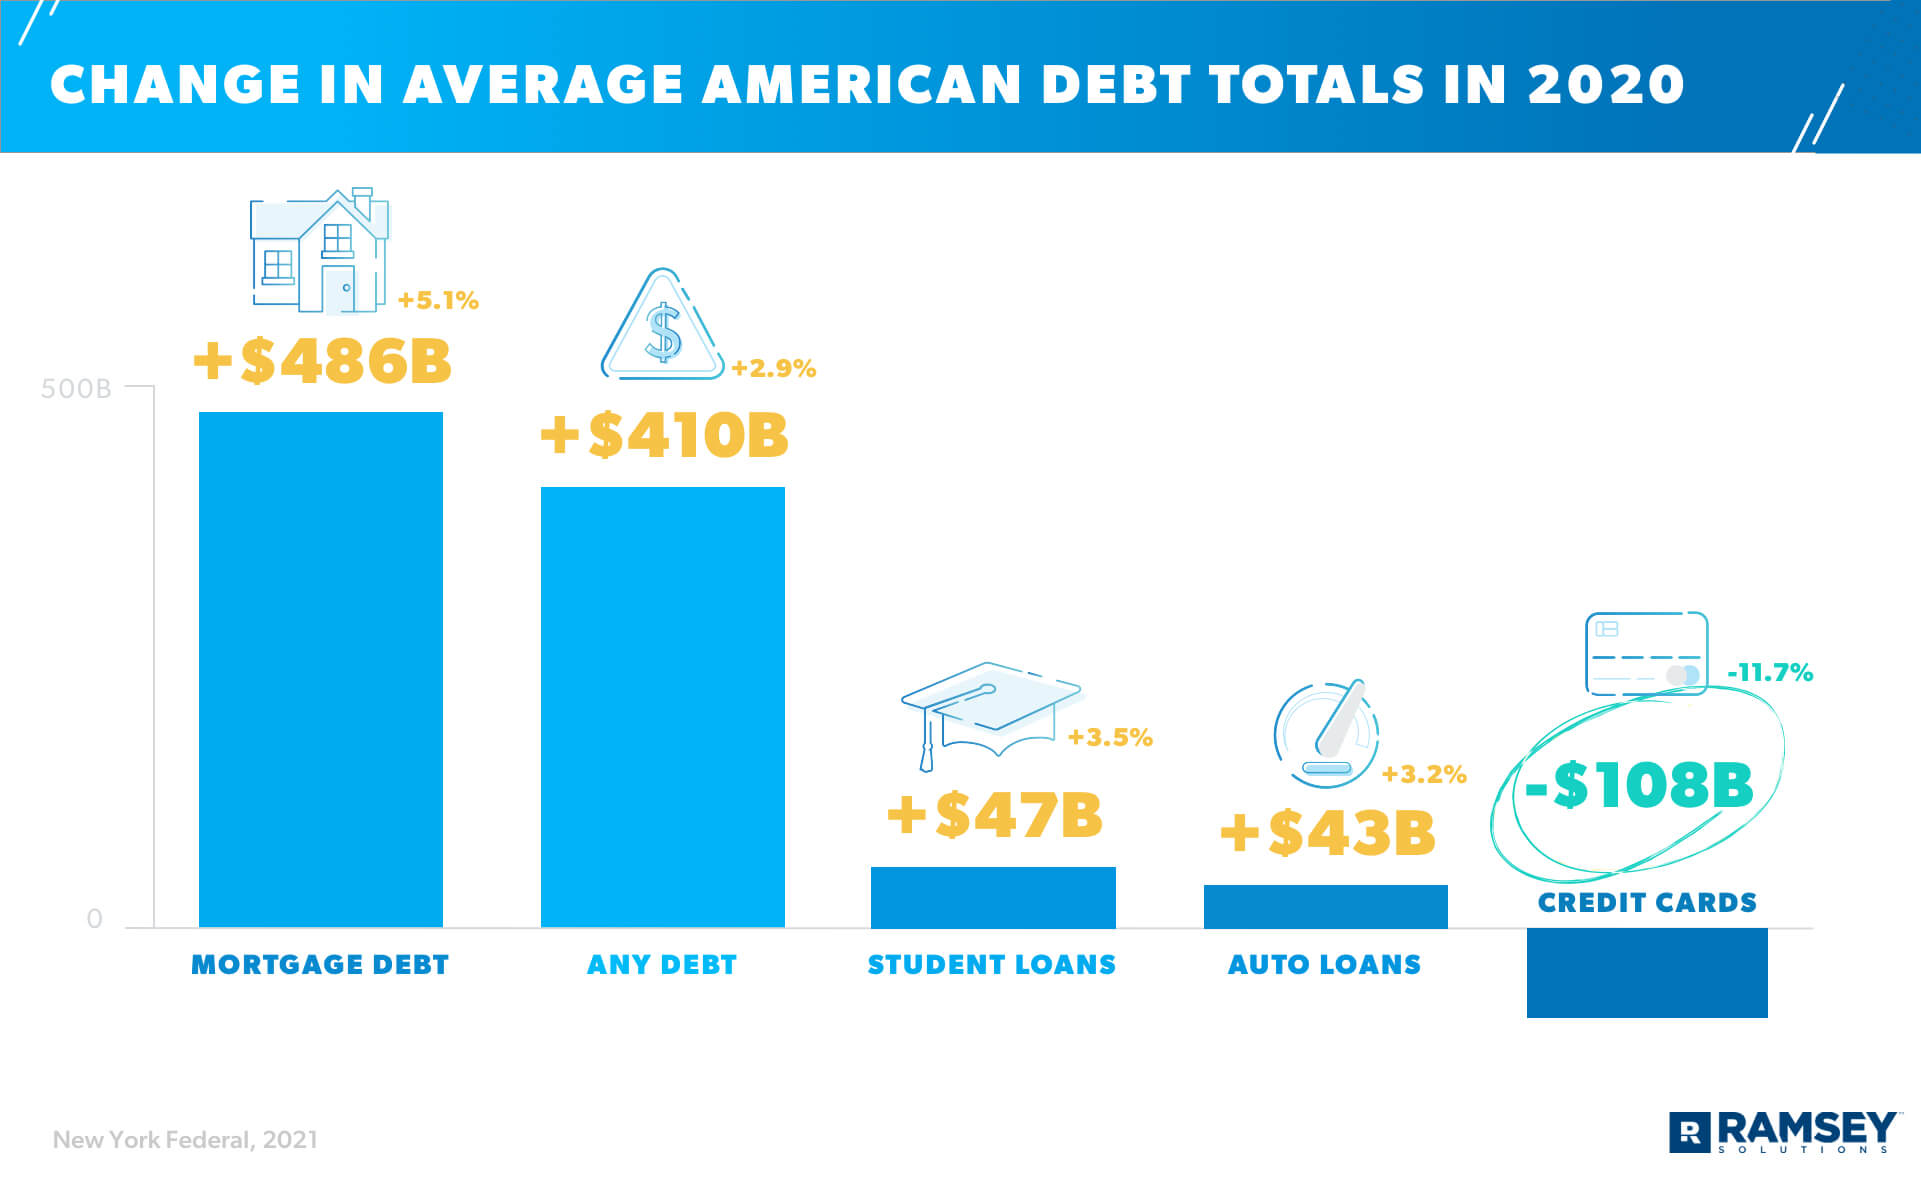 2020's Effect on Average American Debt Totals